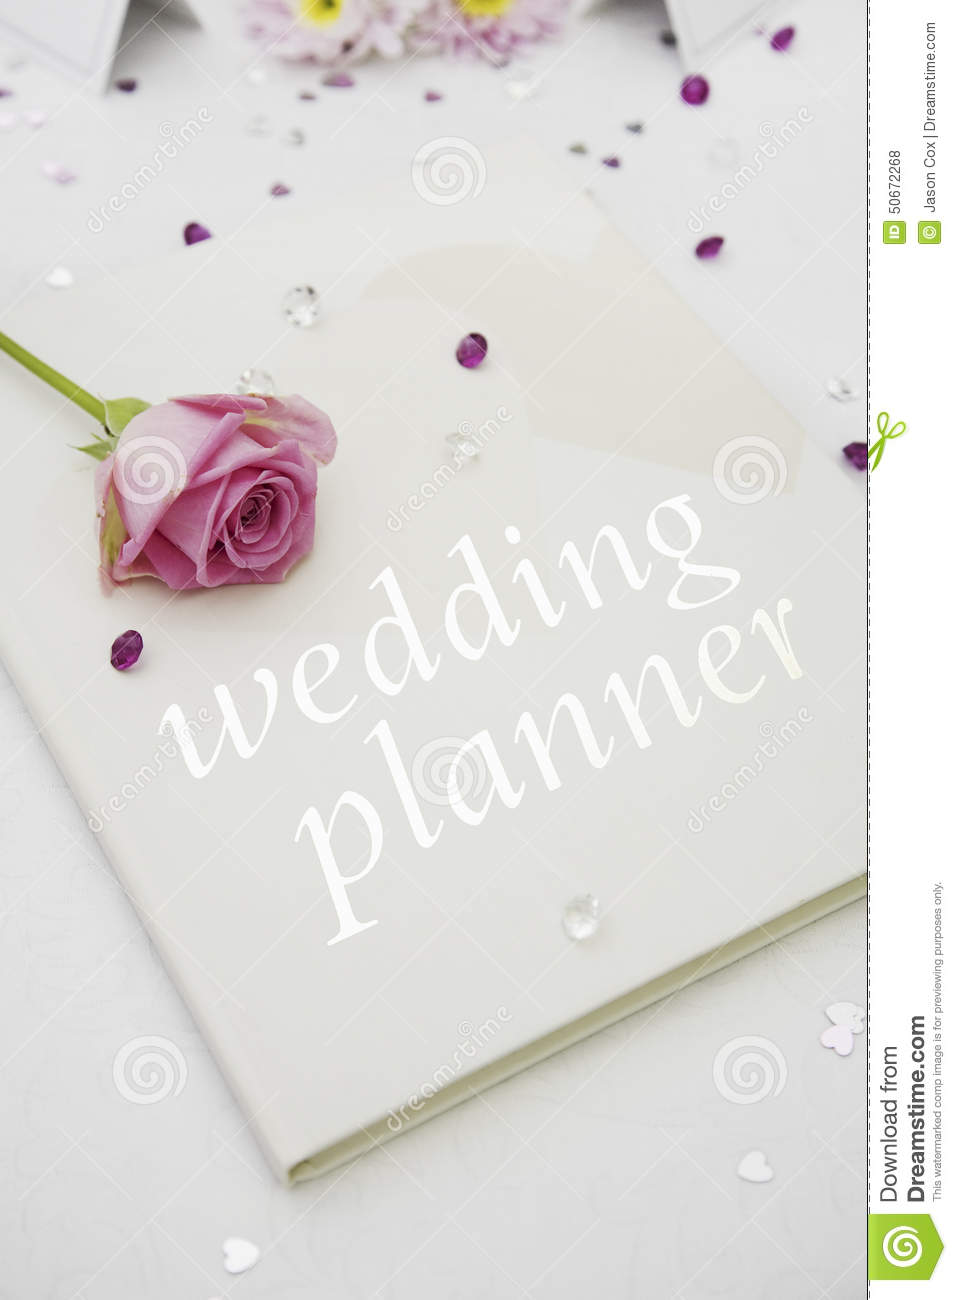 wedding planner book stock photo image of tablecloth 50672268